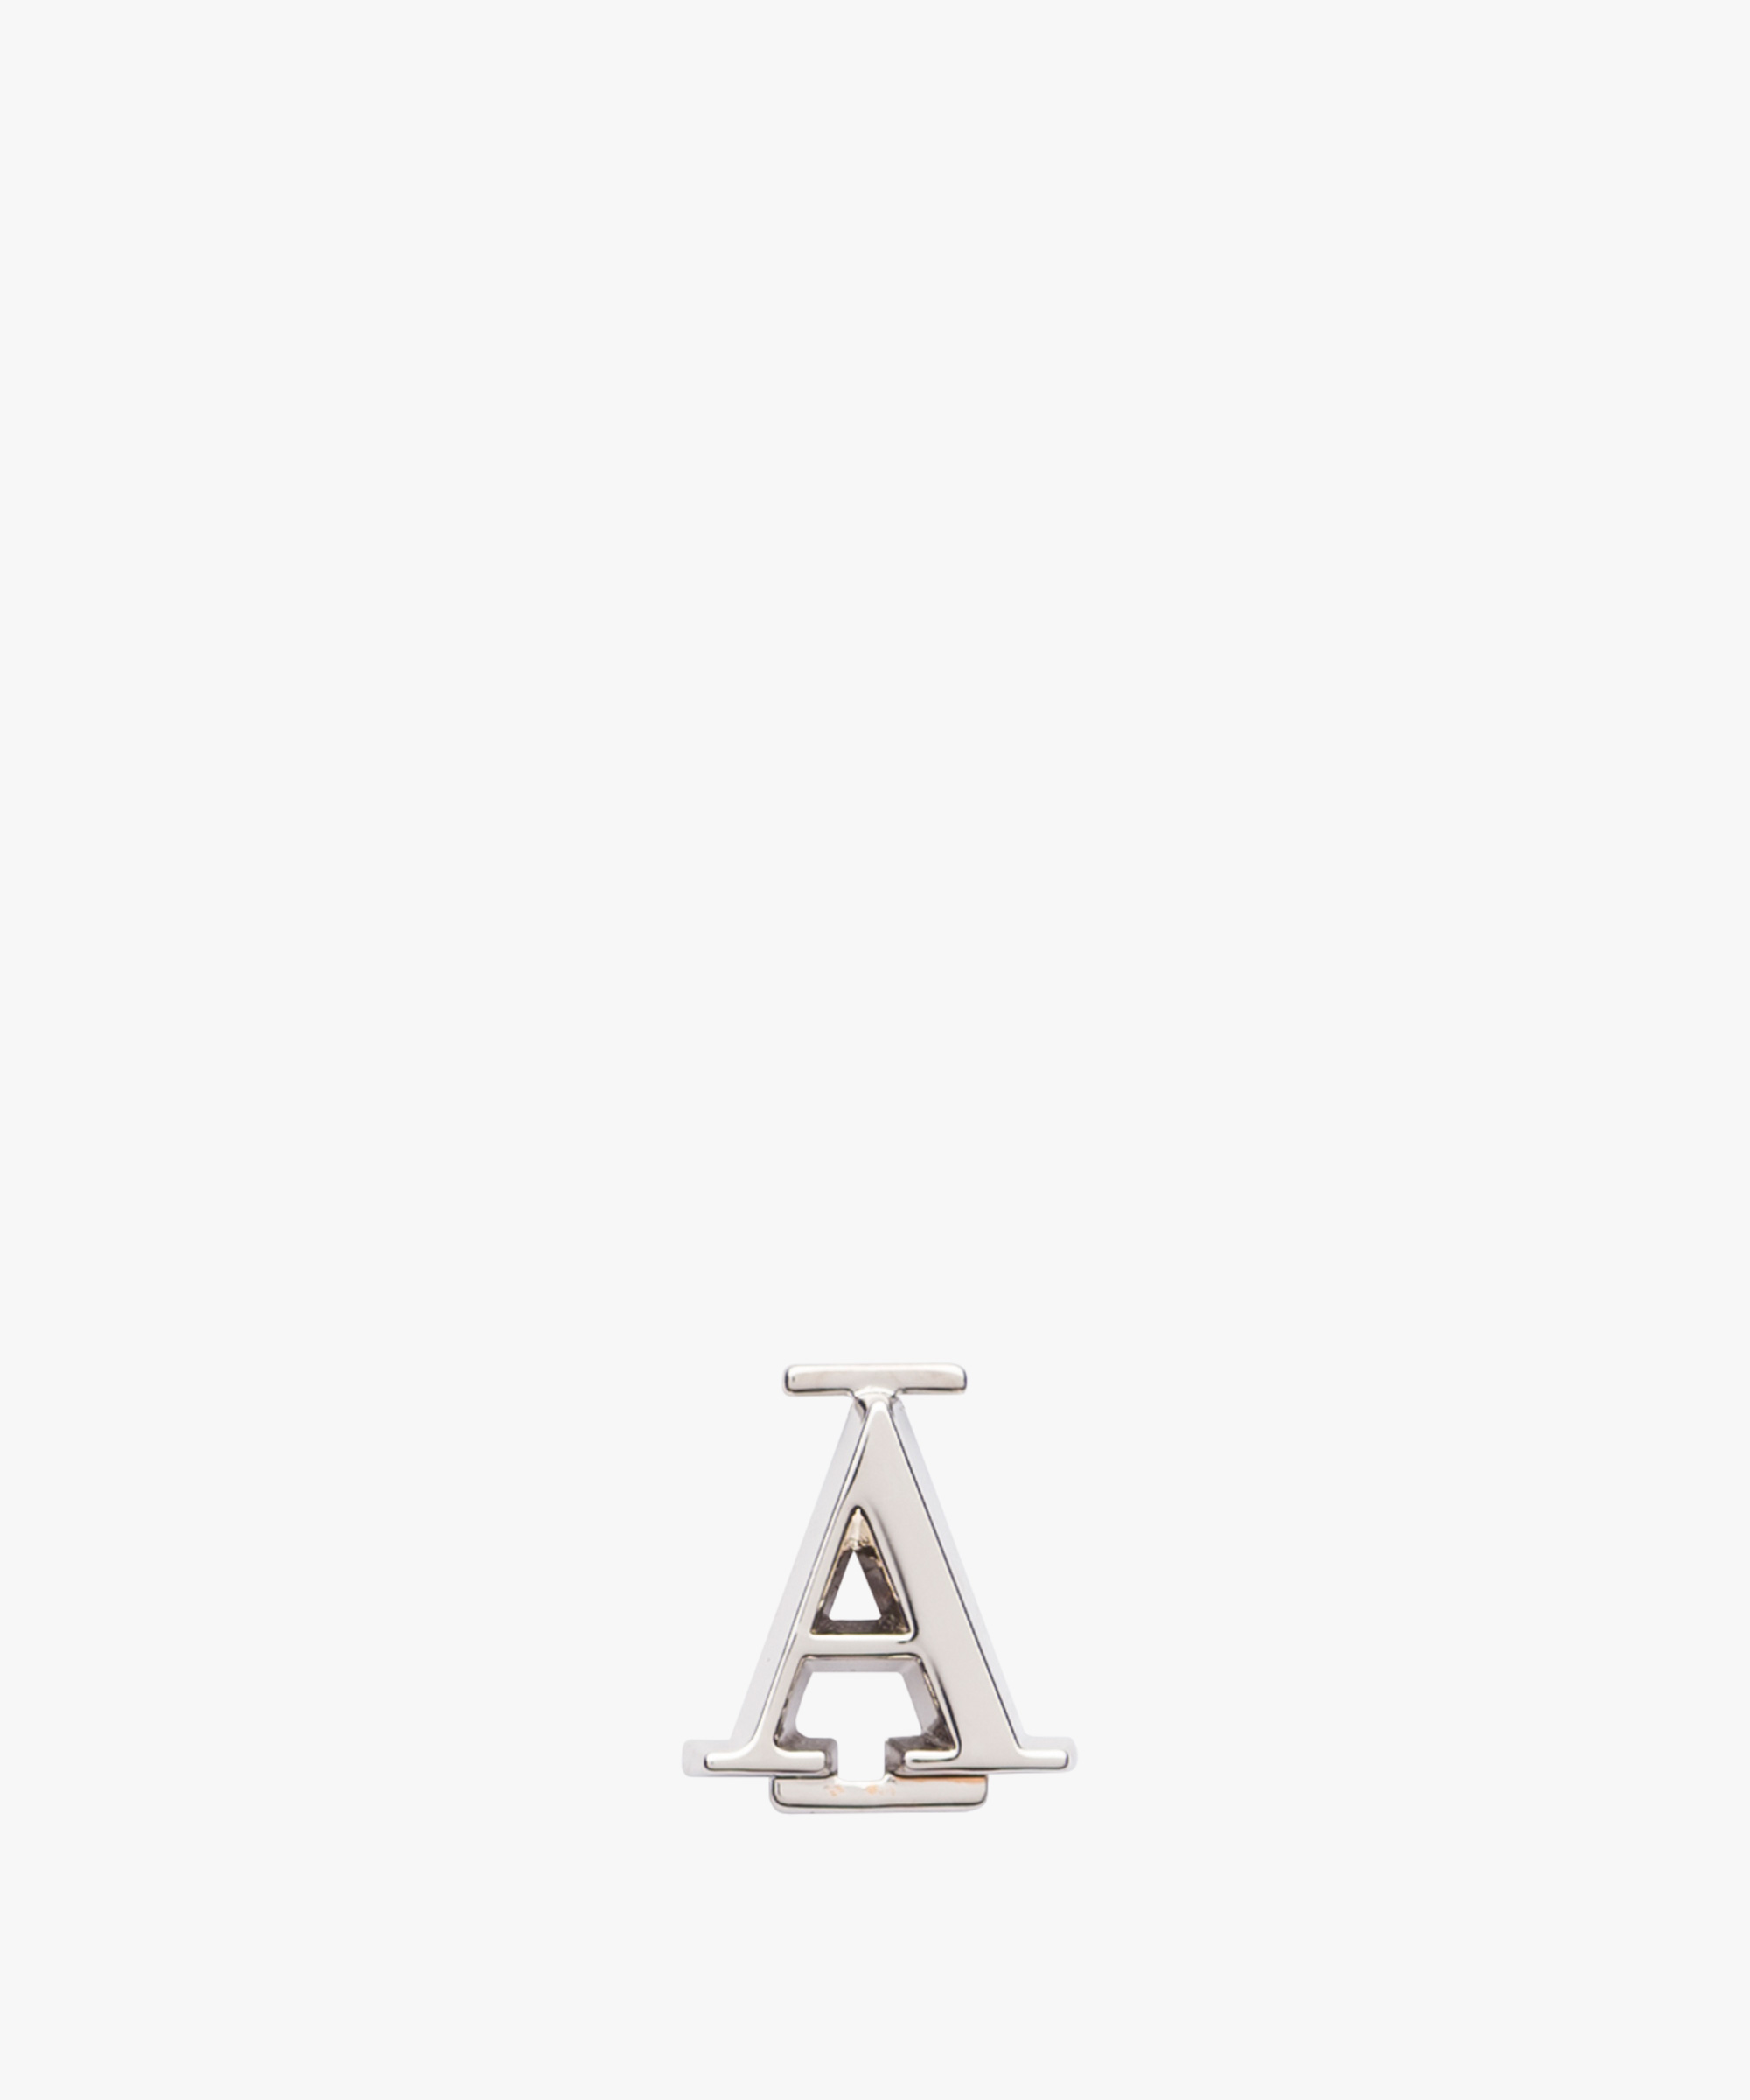 Metal Letter Prada POLISHED STEEL; Metal Letter Prada POLISHED STEEL ...